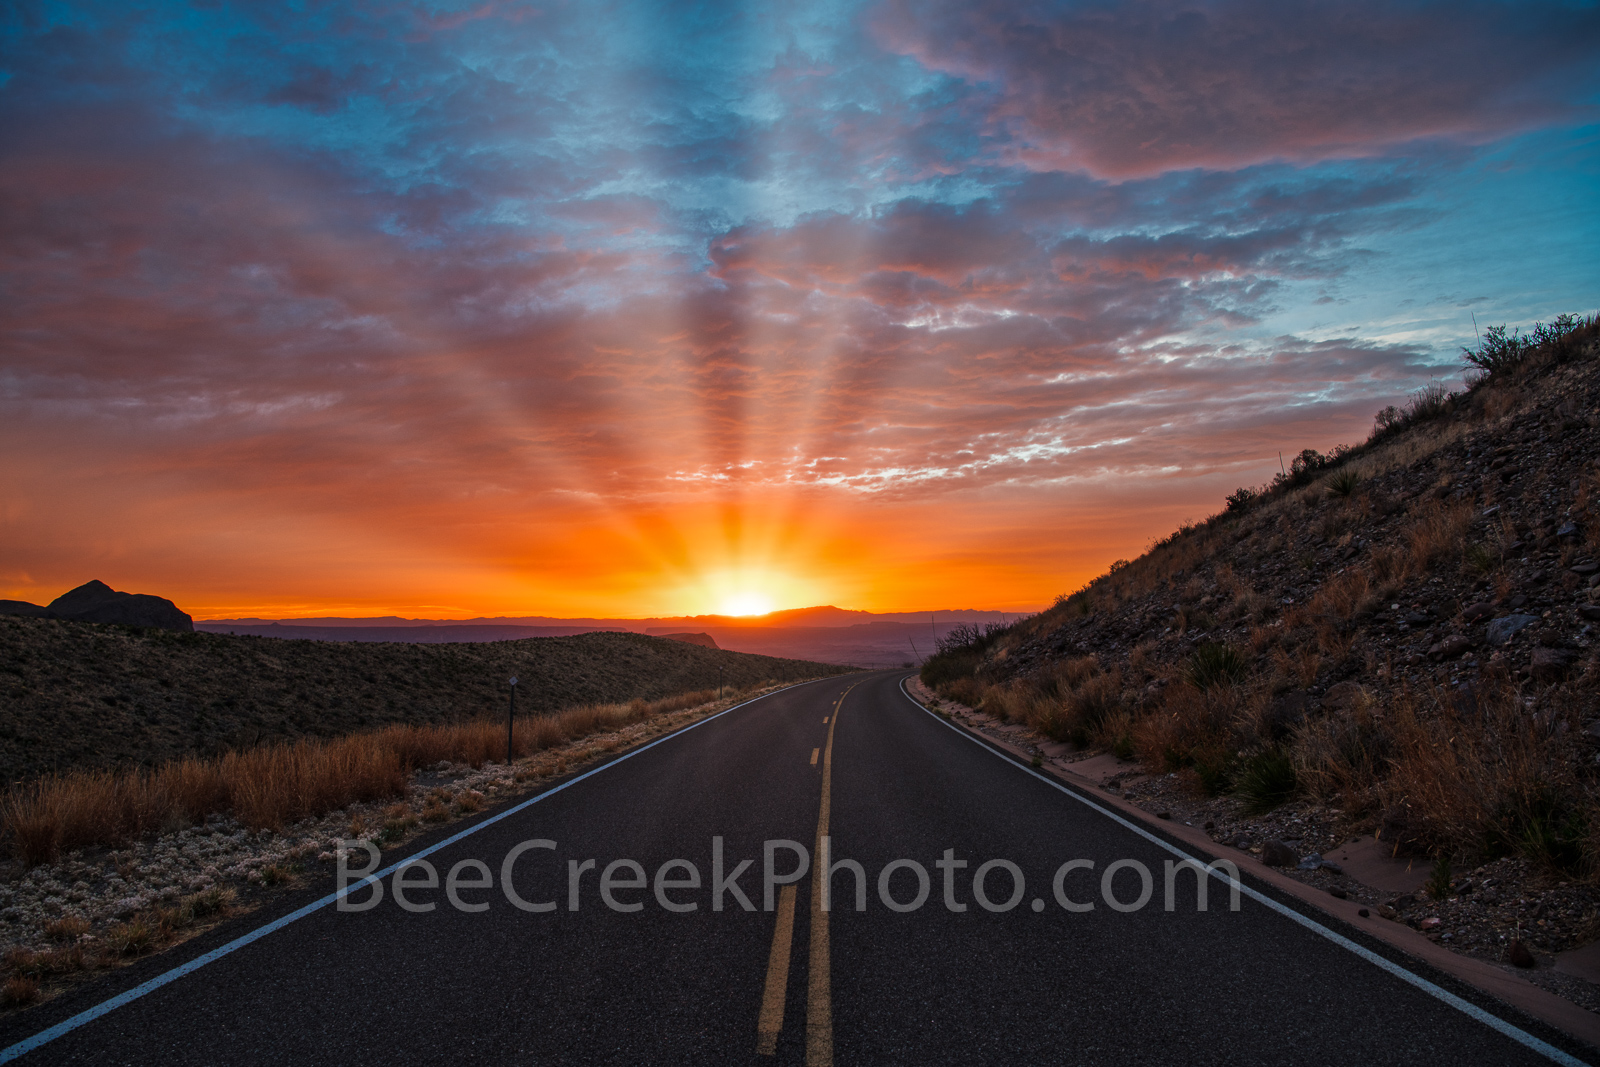 Sunset, Ross Maxwell Scenic Drive, Big Bend National Park, texas landscape, suns rays, road,Santa Elena Canyon, Texas sunset, landscape, texas landscape,  texas sunset,, photo